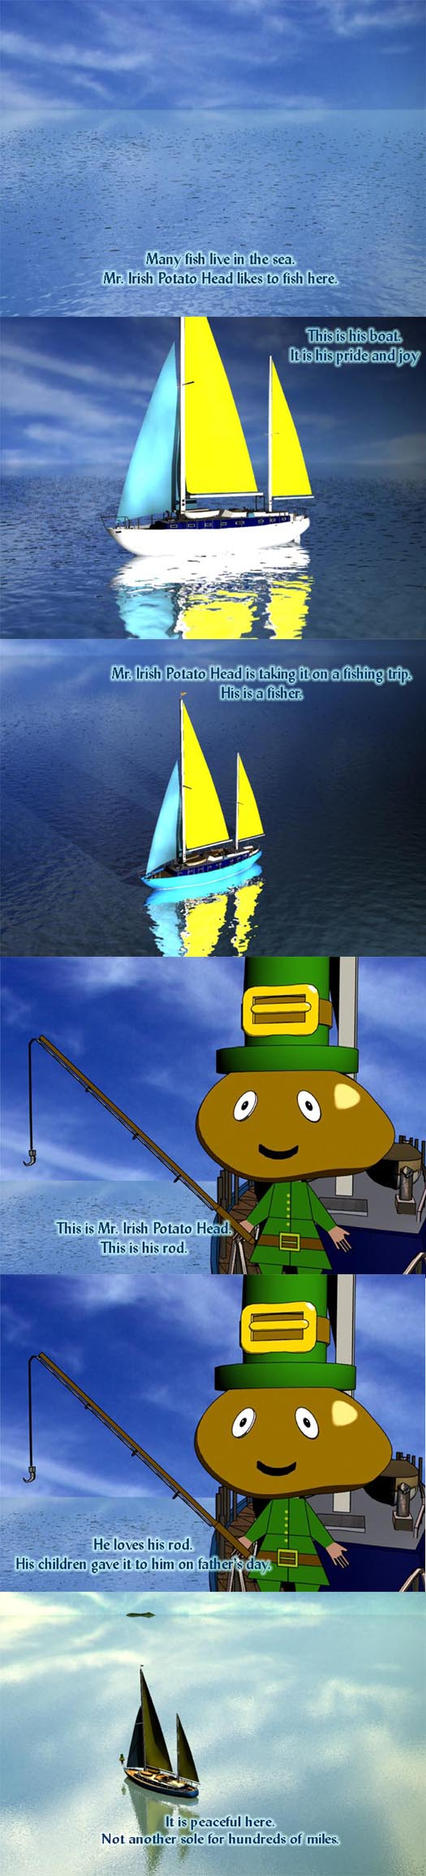 Mr. Irish Potato Head at Sea2 by Judan